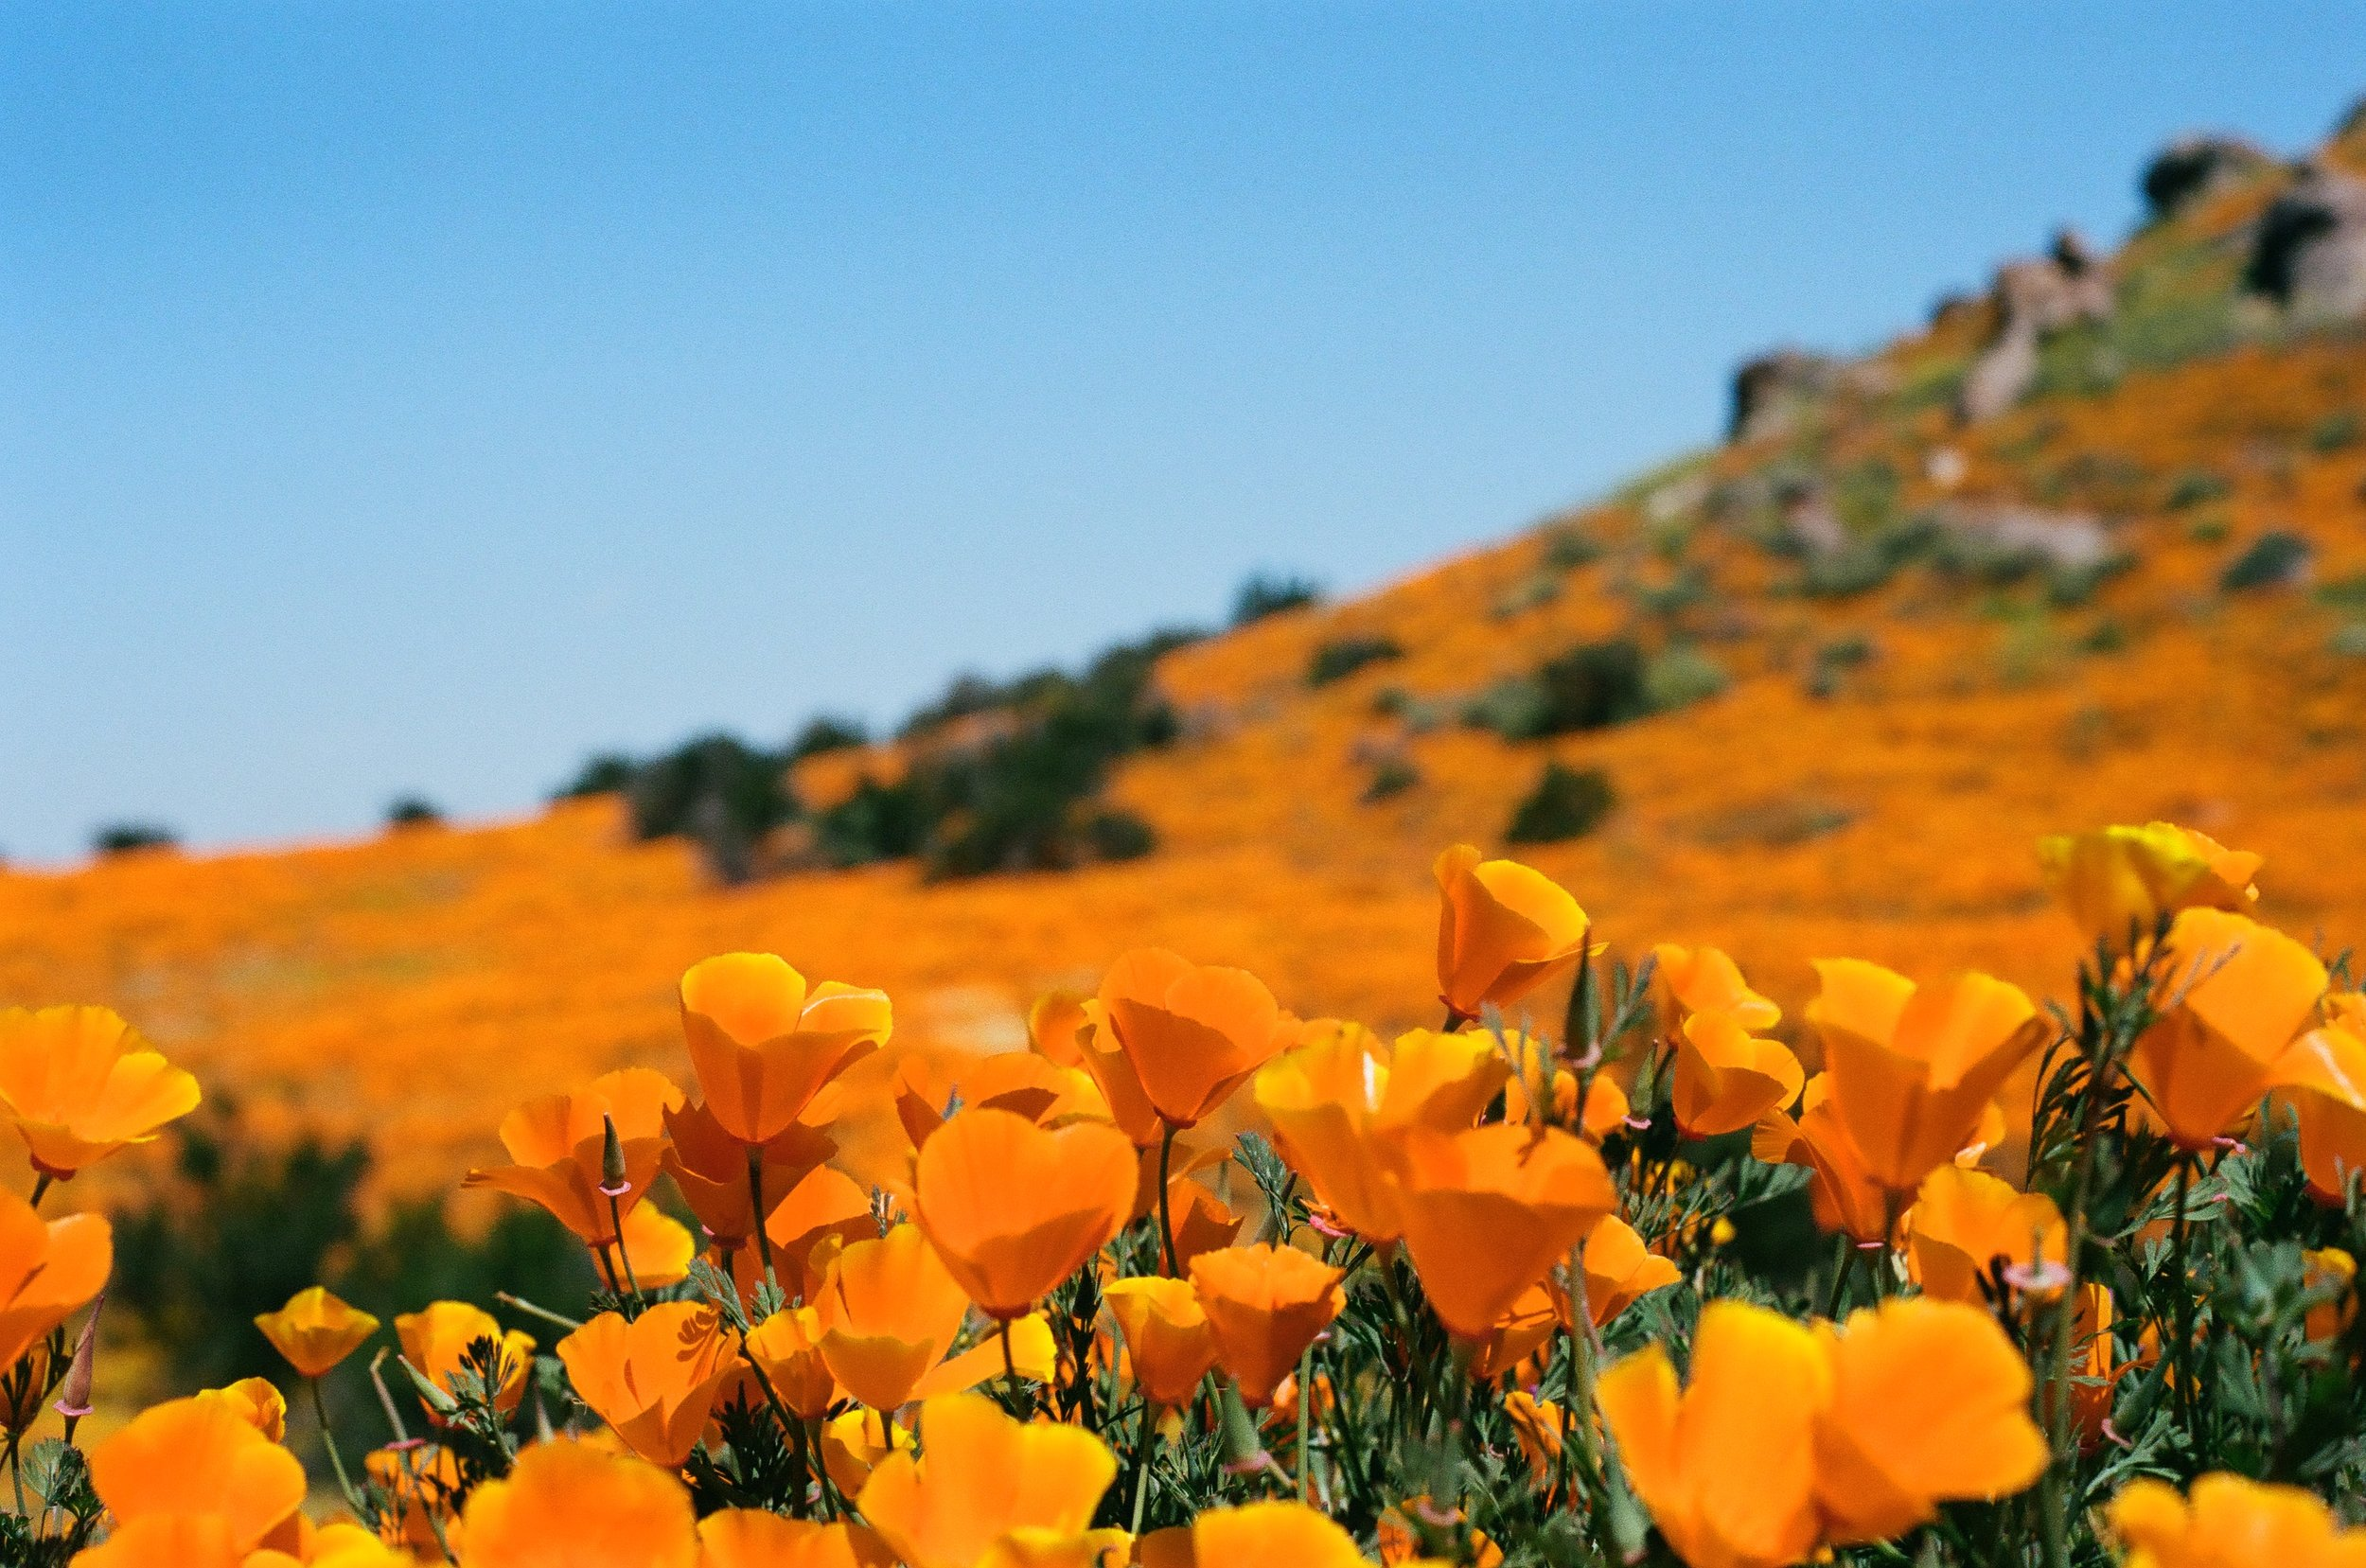 California Poppy Super Bloom, 35mm